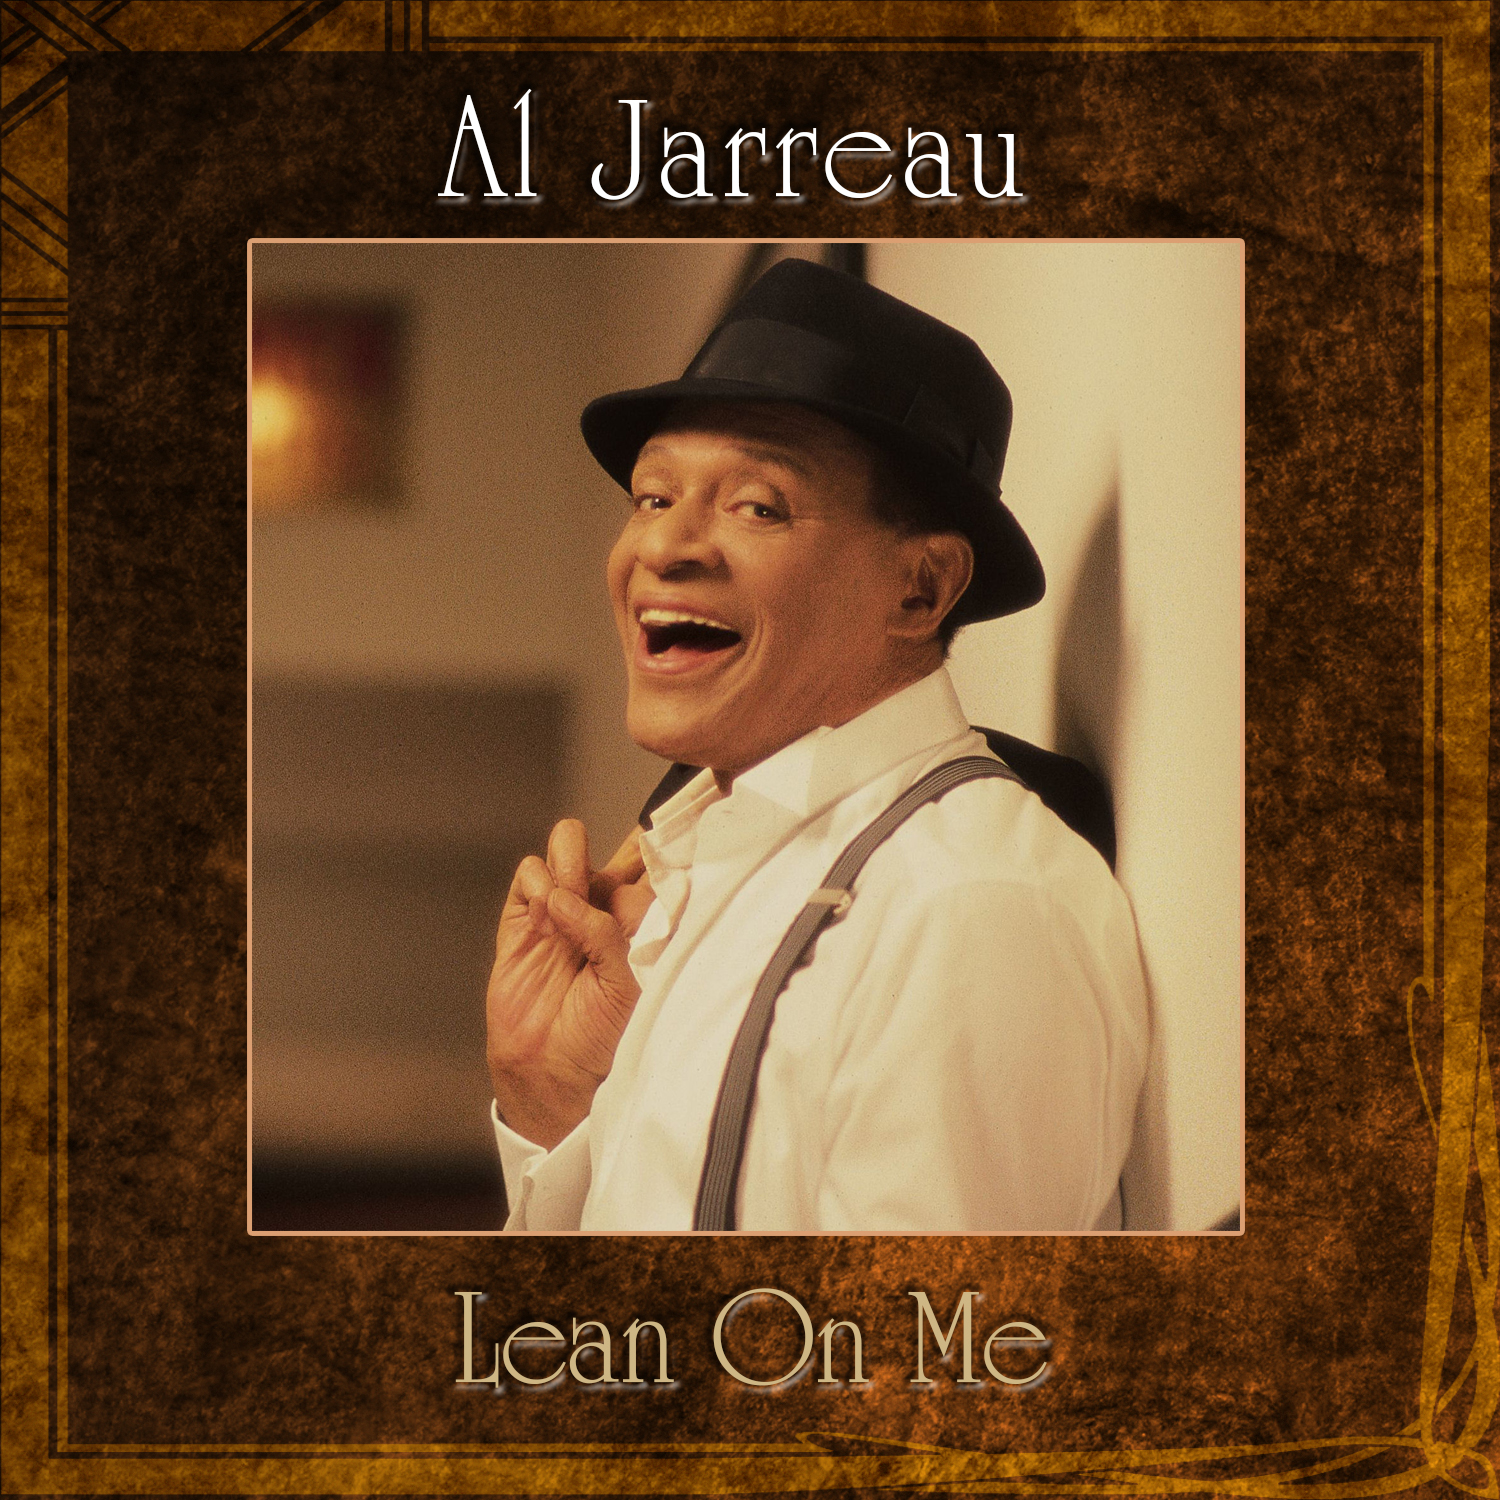 Lean On Me by Al Jarreau